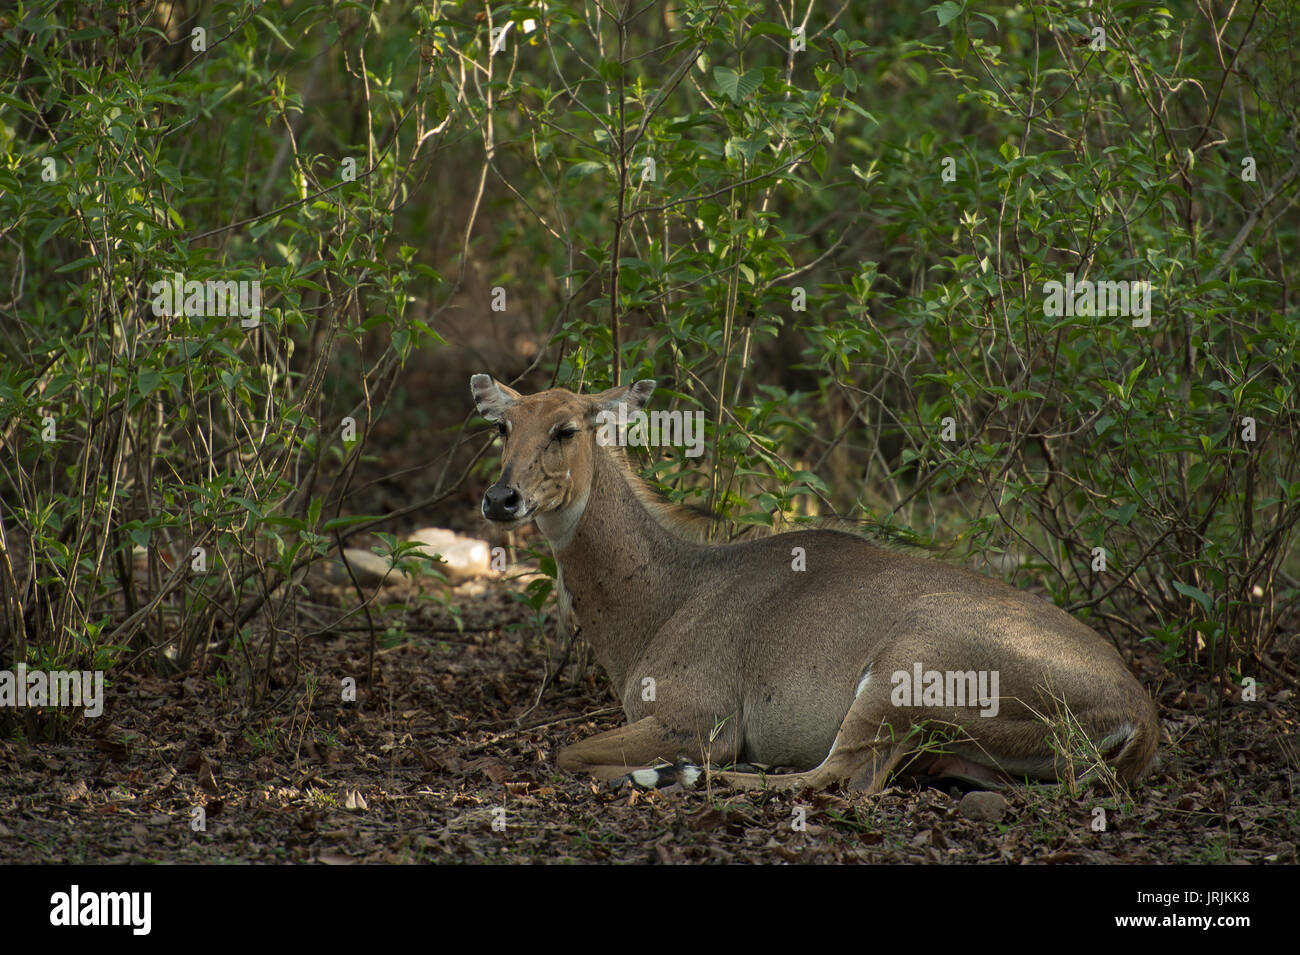 Sambar Deer, Rusa unicolor, Cervidae, Rajaji National Park, India - Stock Image